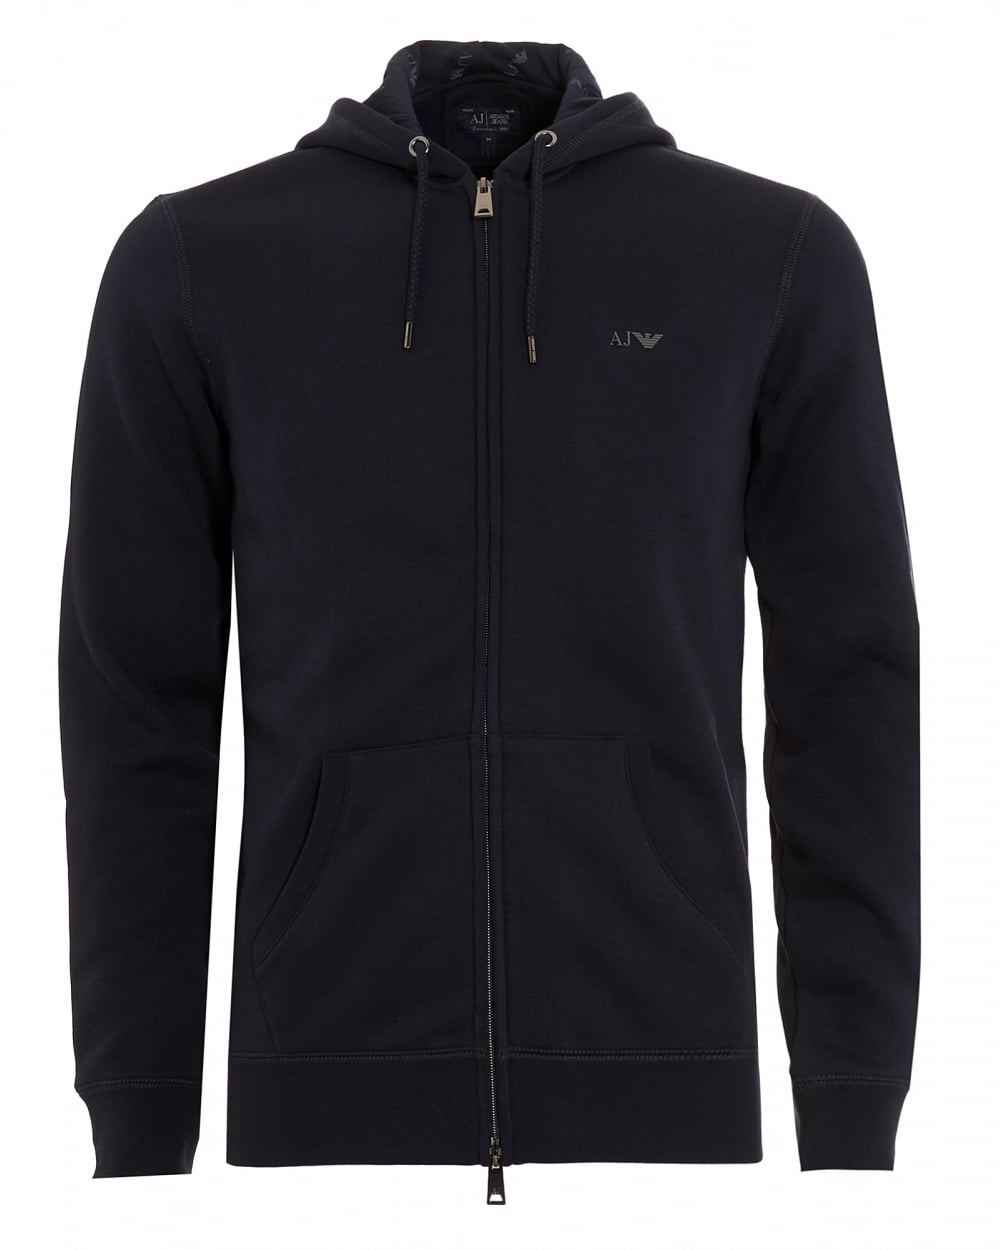 Armani Jeans Mens Basic Hoodie Navy Blue Full Zip Sweatshirt